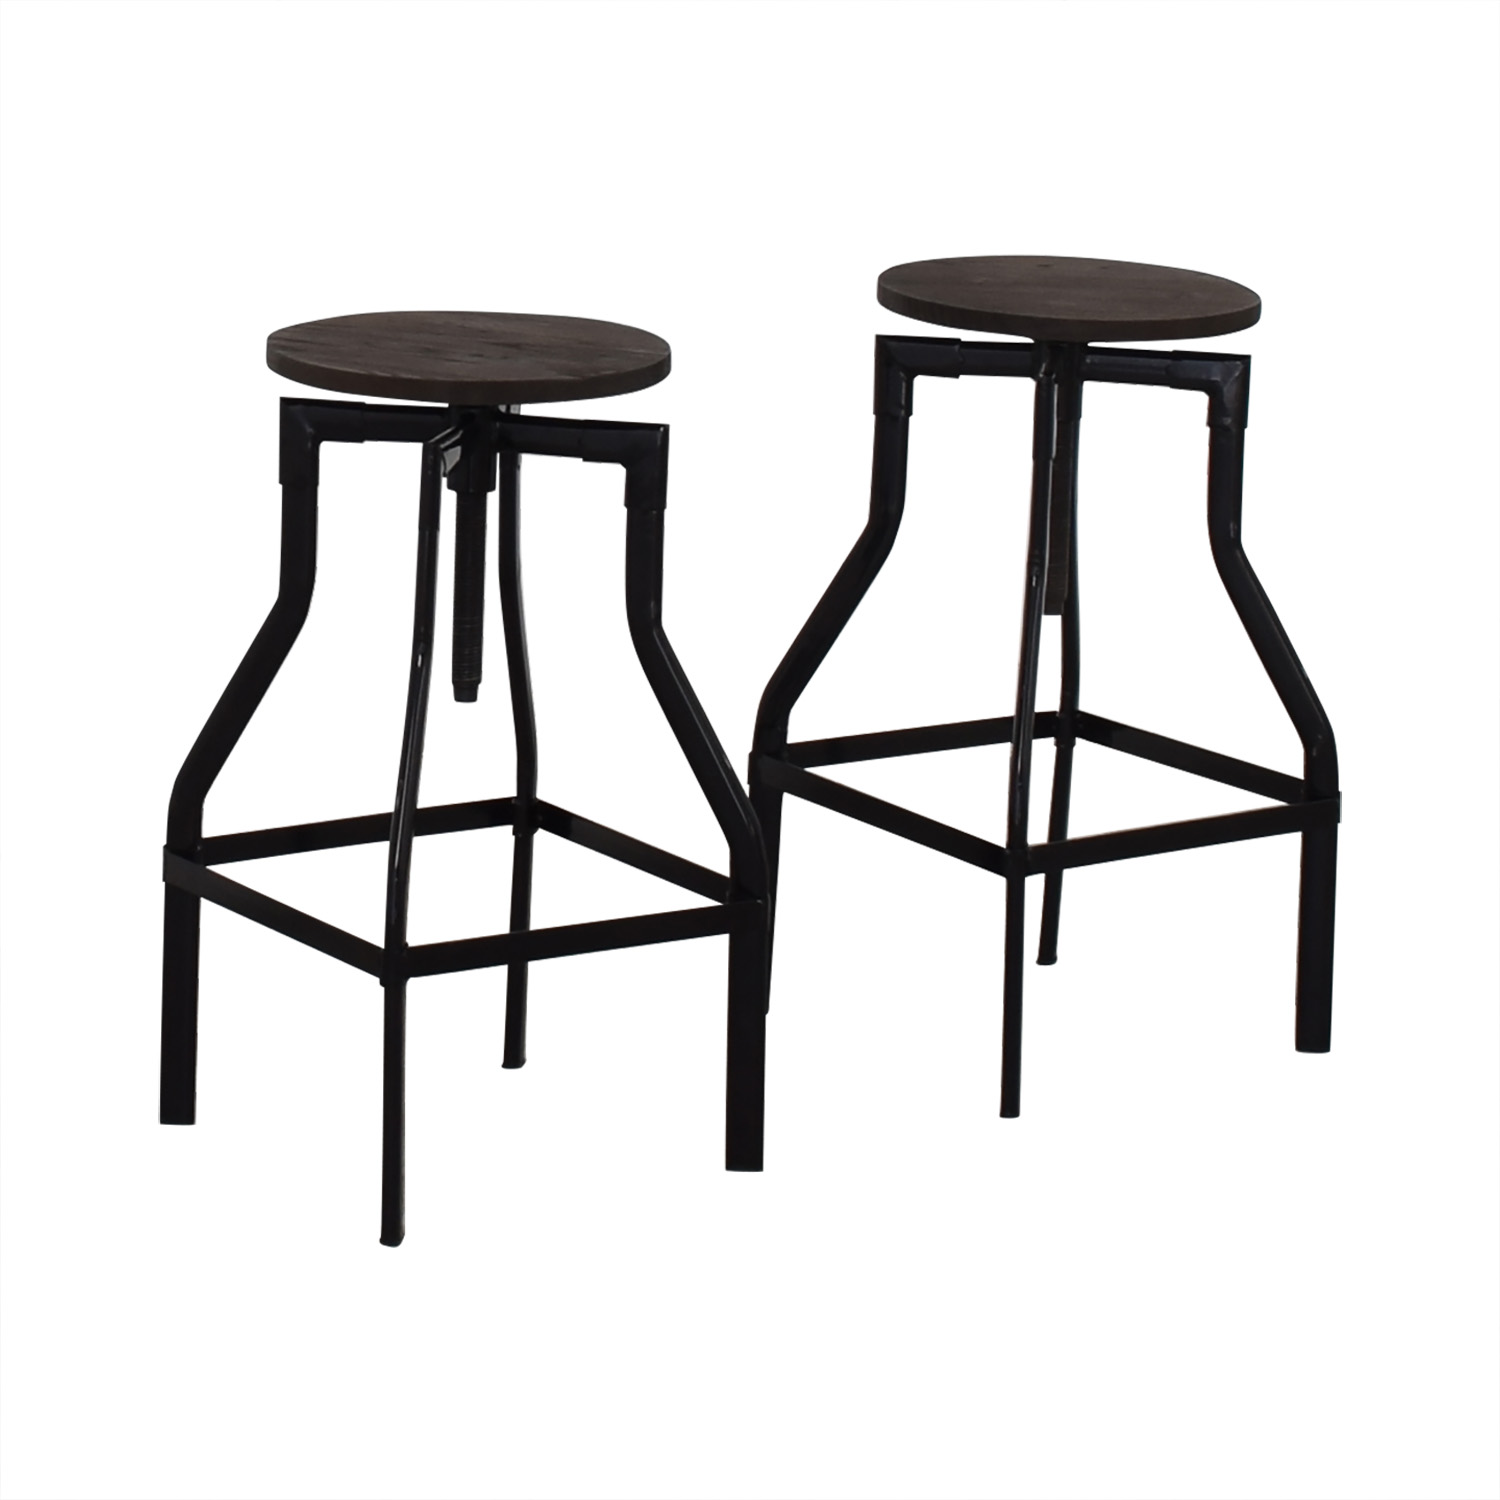 Industrial Wood Stools for sale